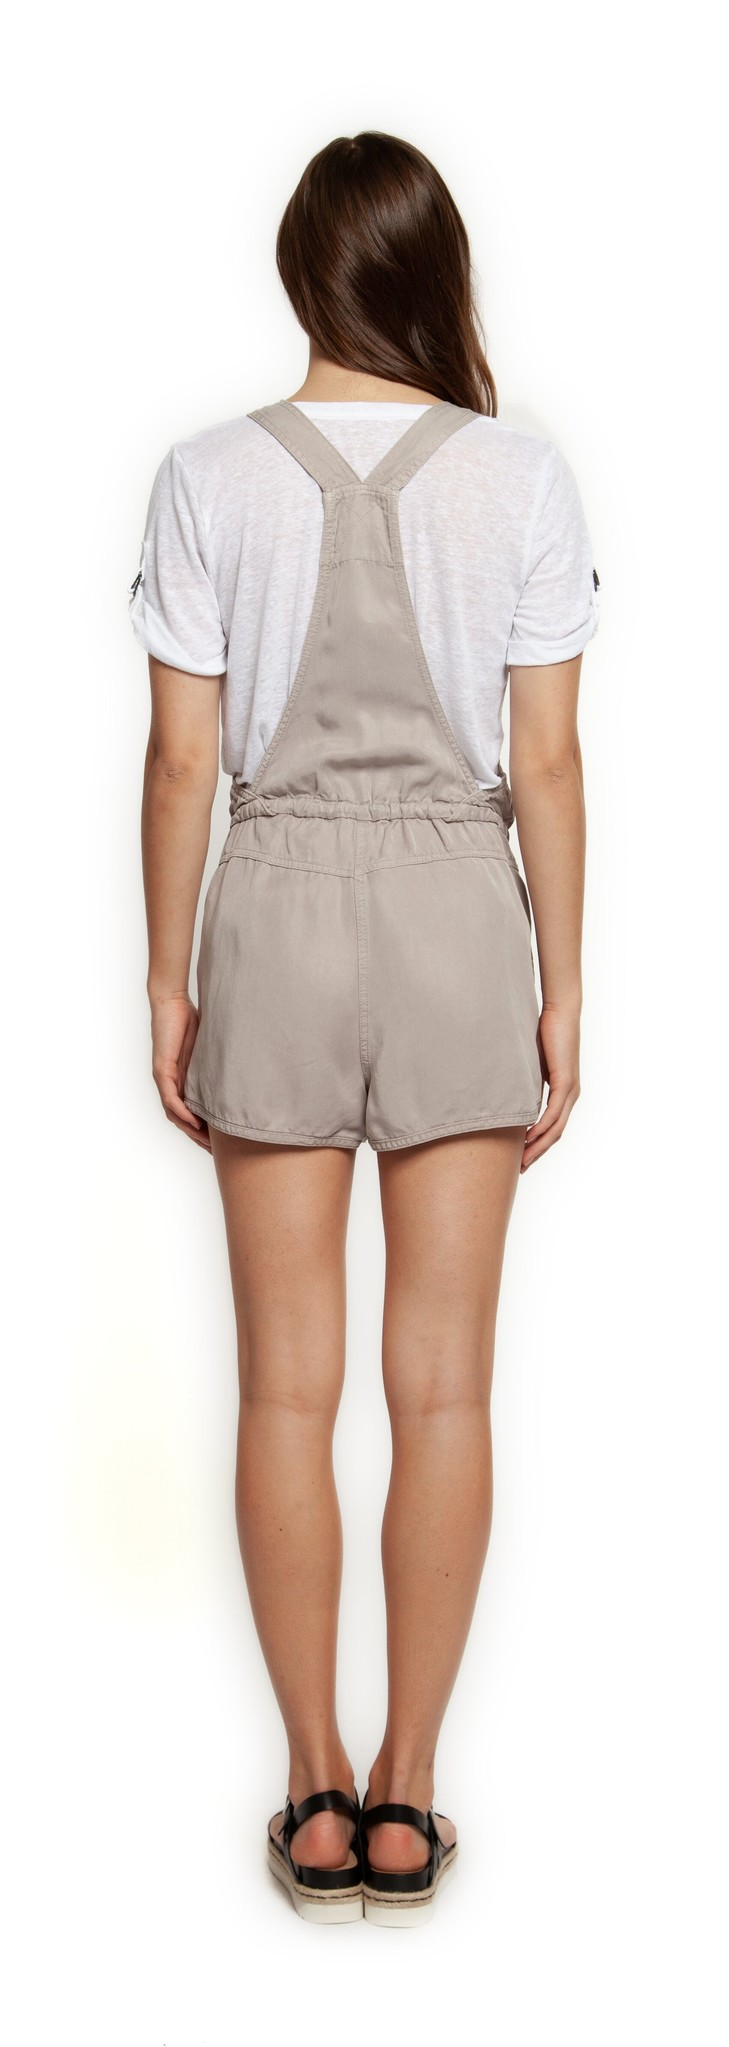 Dex Overalls Shorts w/ Waist Tie & Zipper Pockets